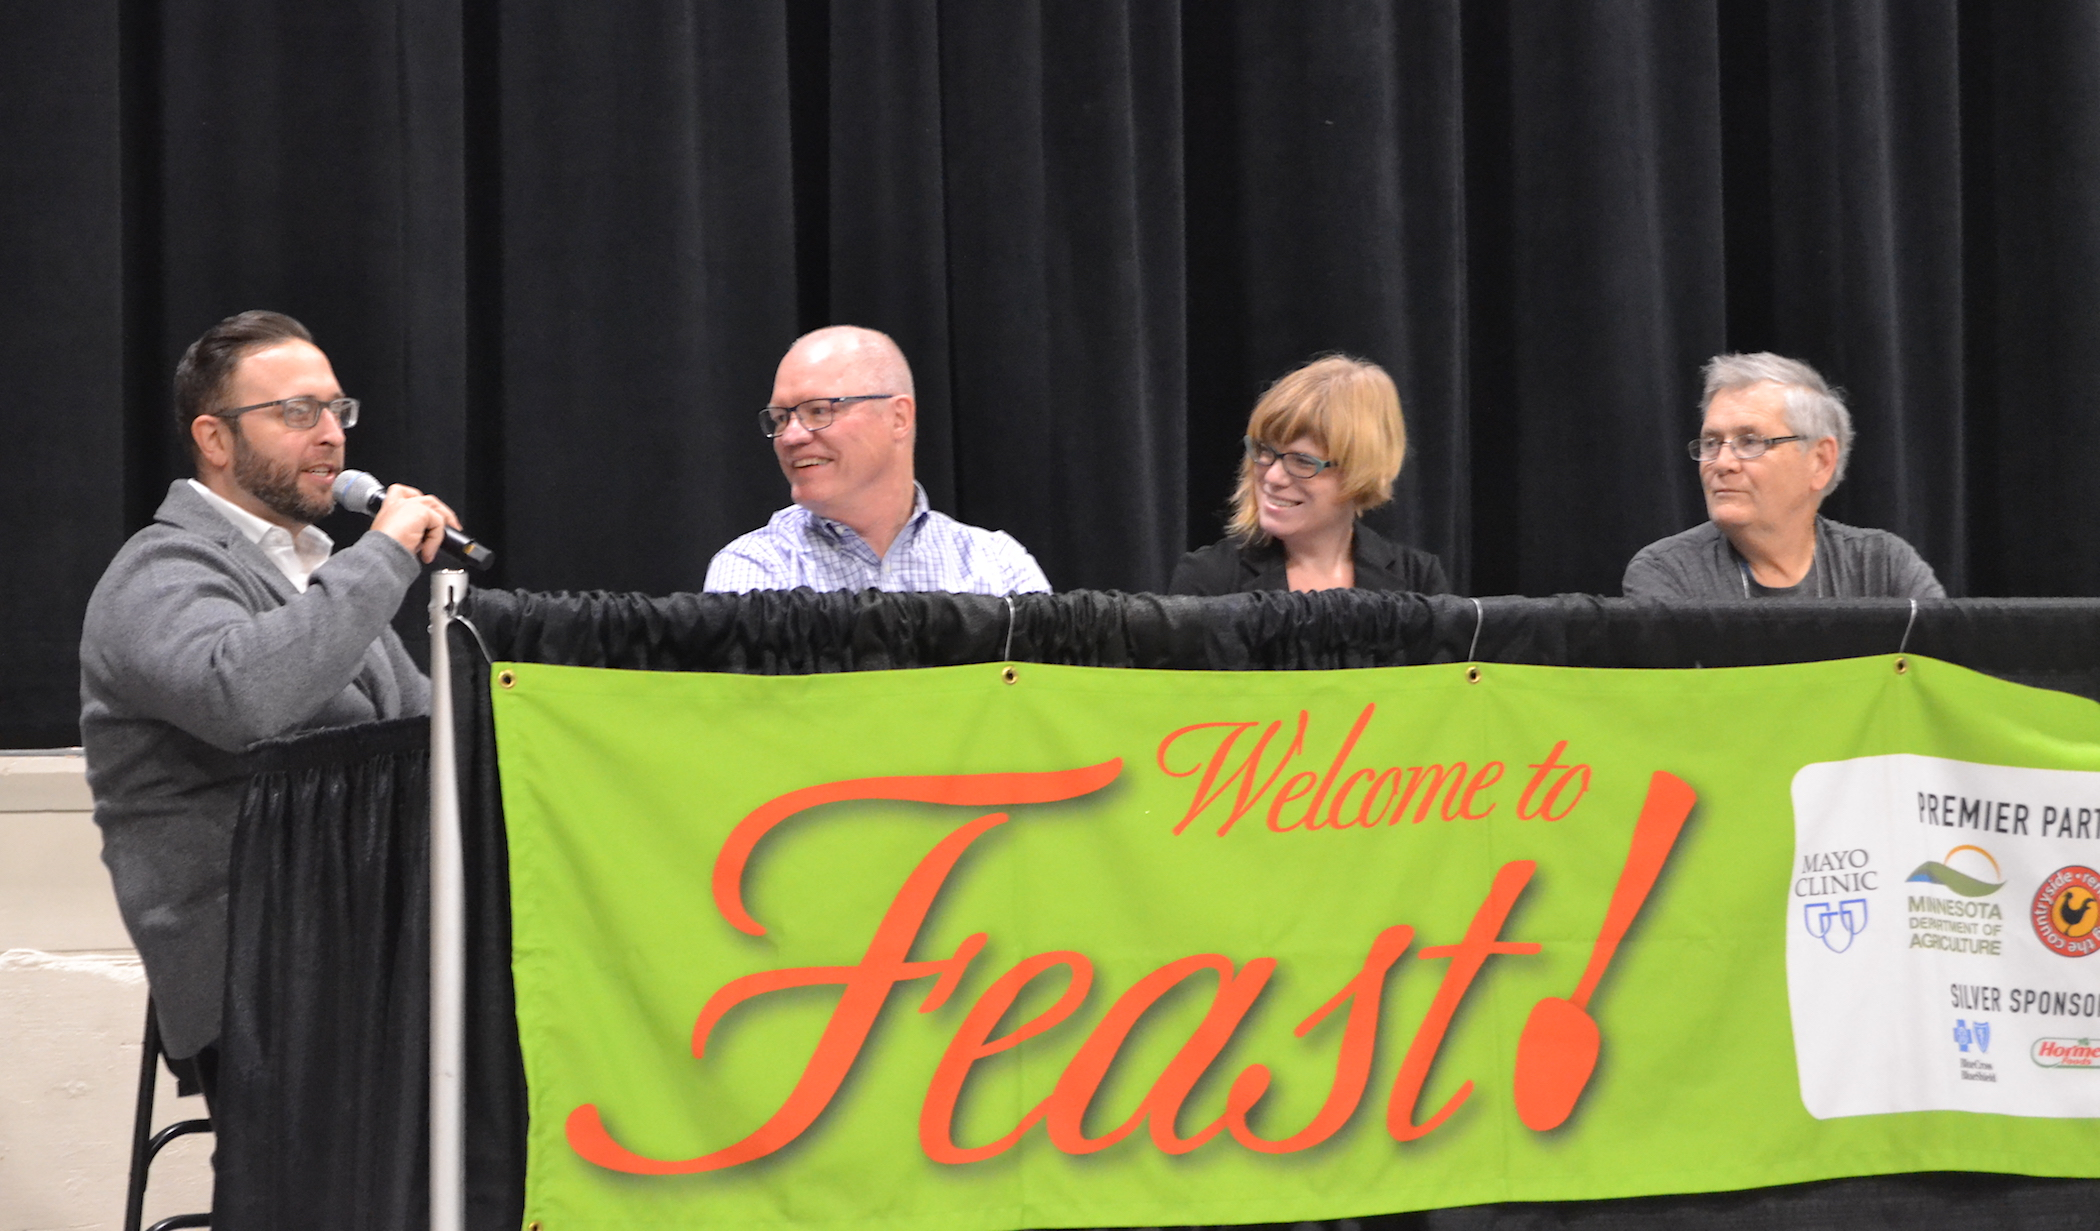 Feast! Local Foods Marketplace - Tradeshow 2018